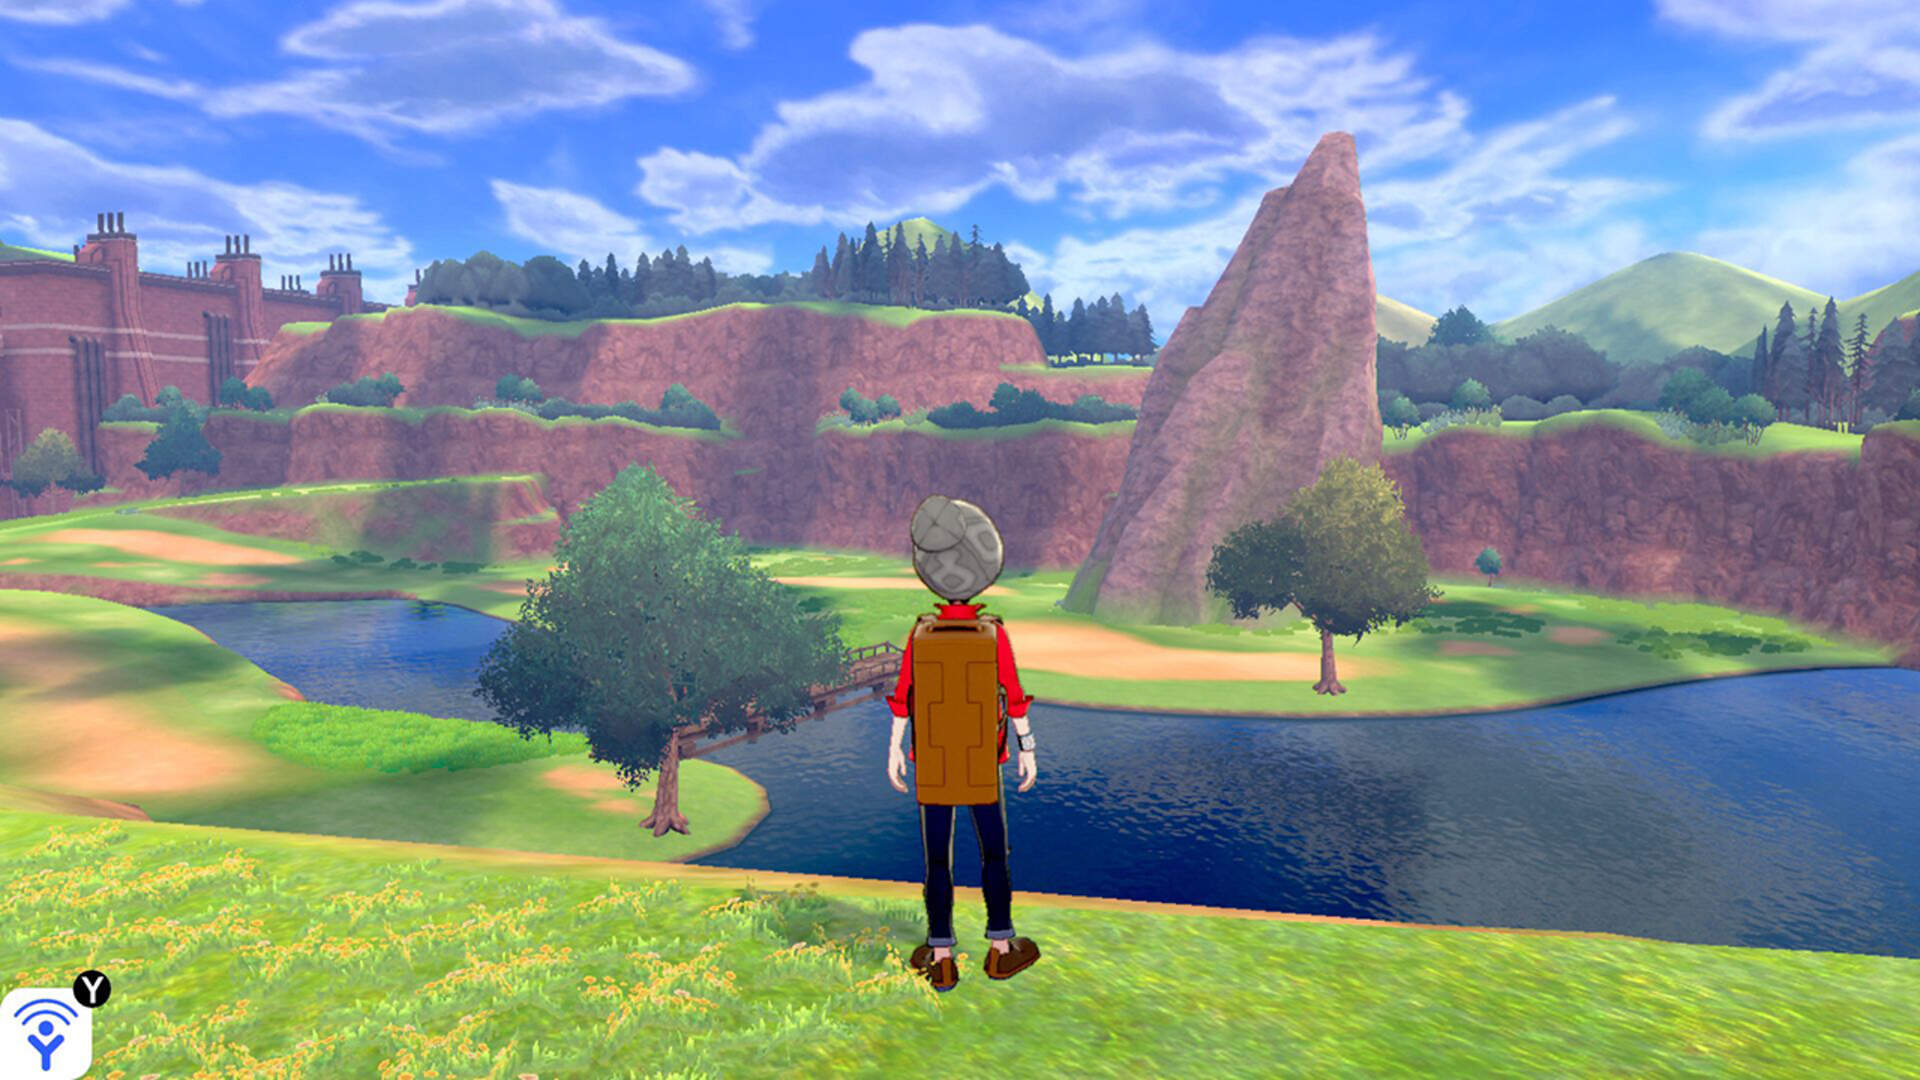 Pokemon Sword and Shield: 'You Can't Throw a Poke Ball, It Won't Let Its Guard Down' Explained